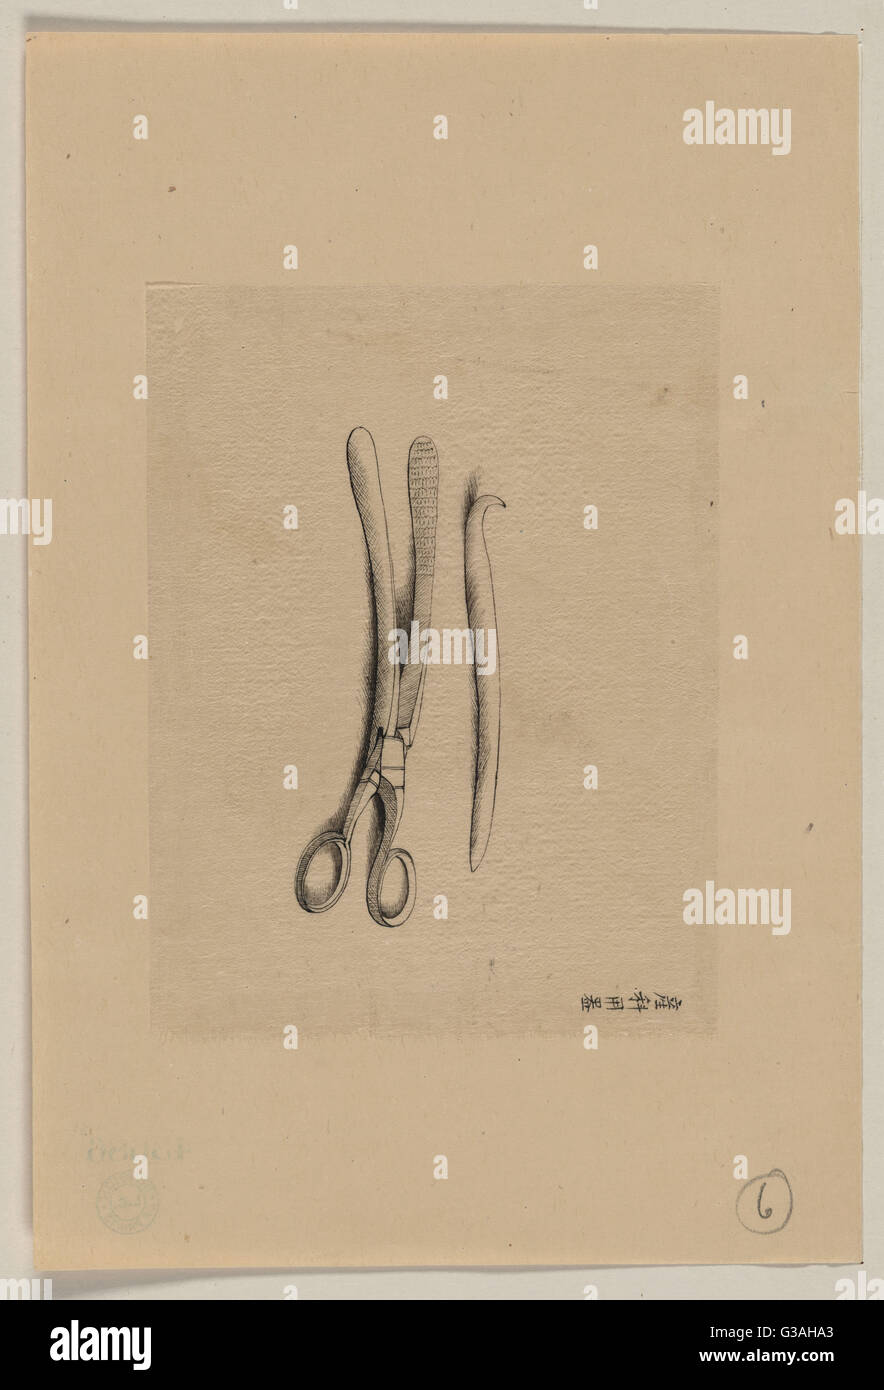 Scissor clamps and hooked probe?. Date 1878?. - Stock Image